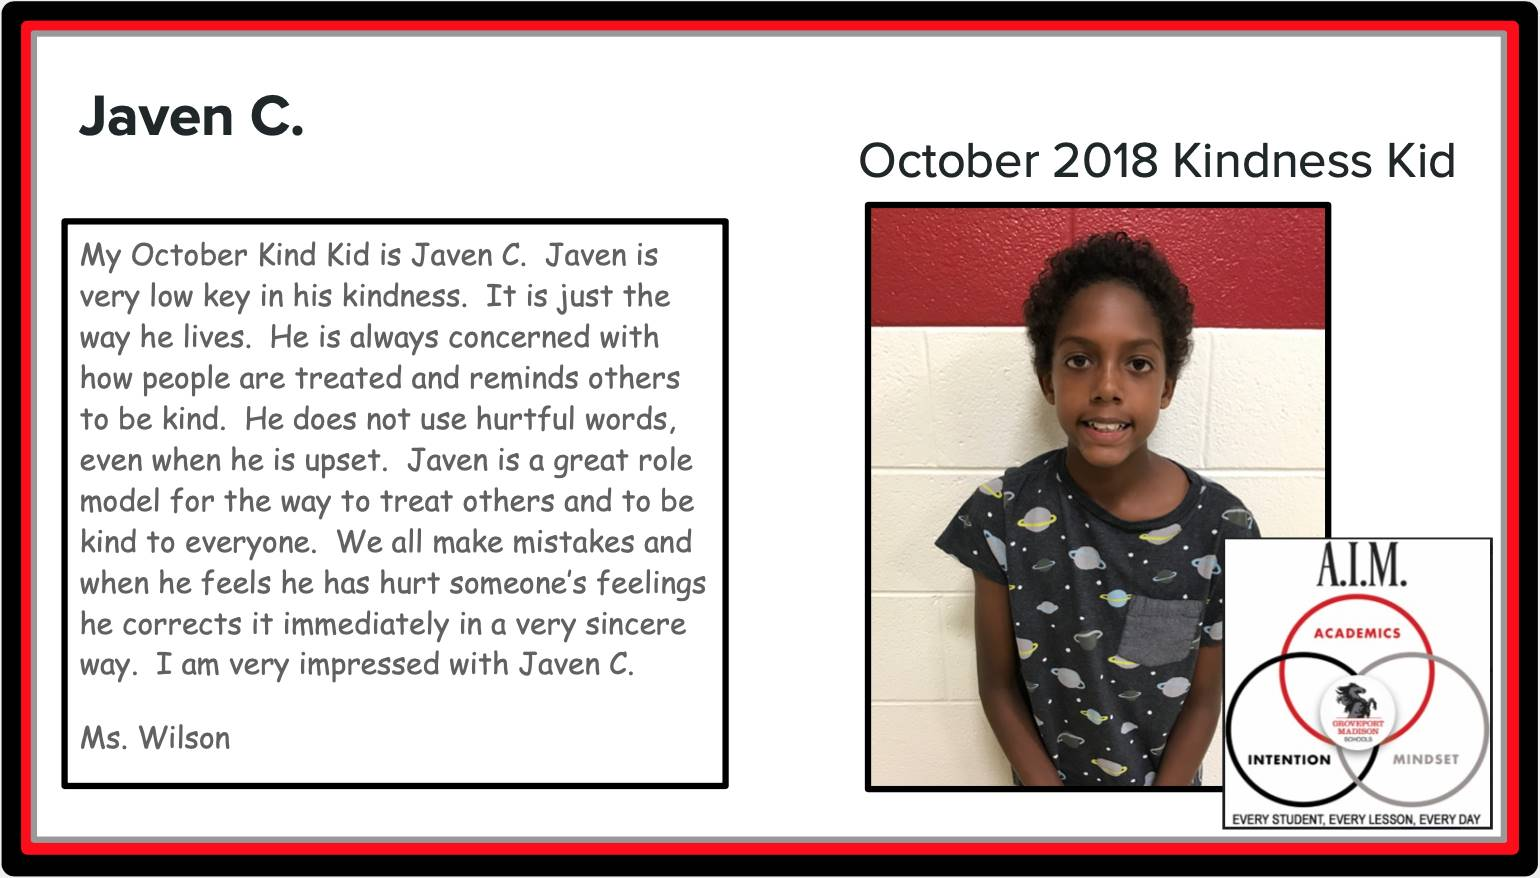 Kindness Kid Javen